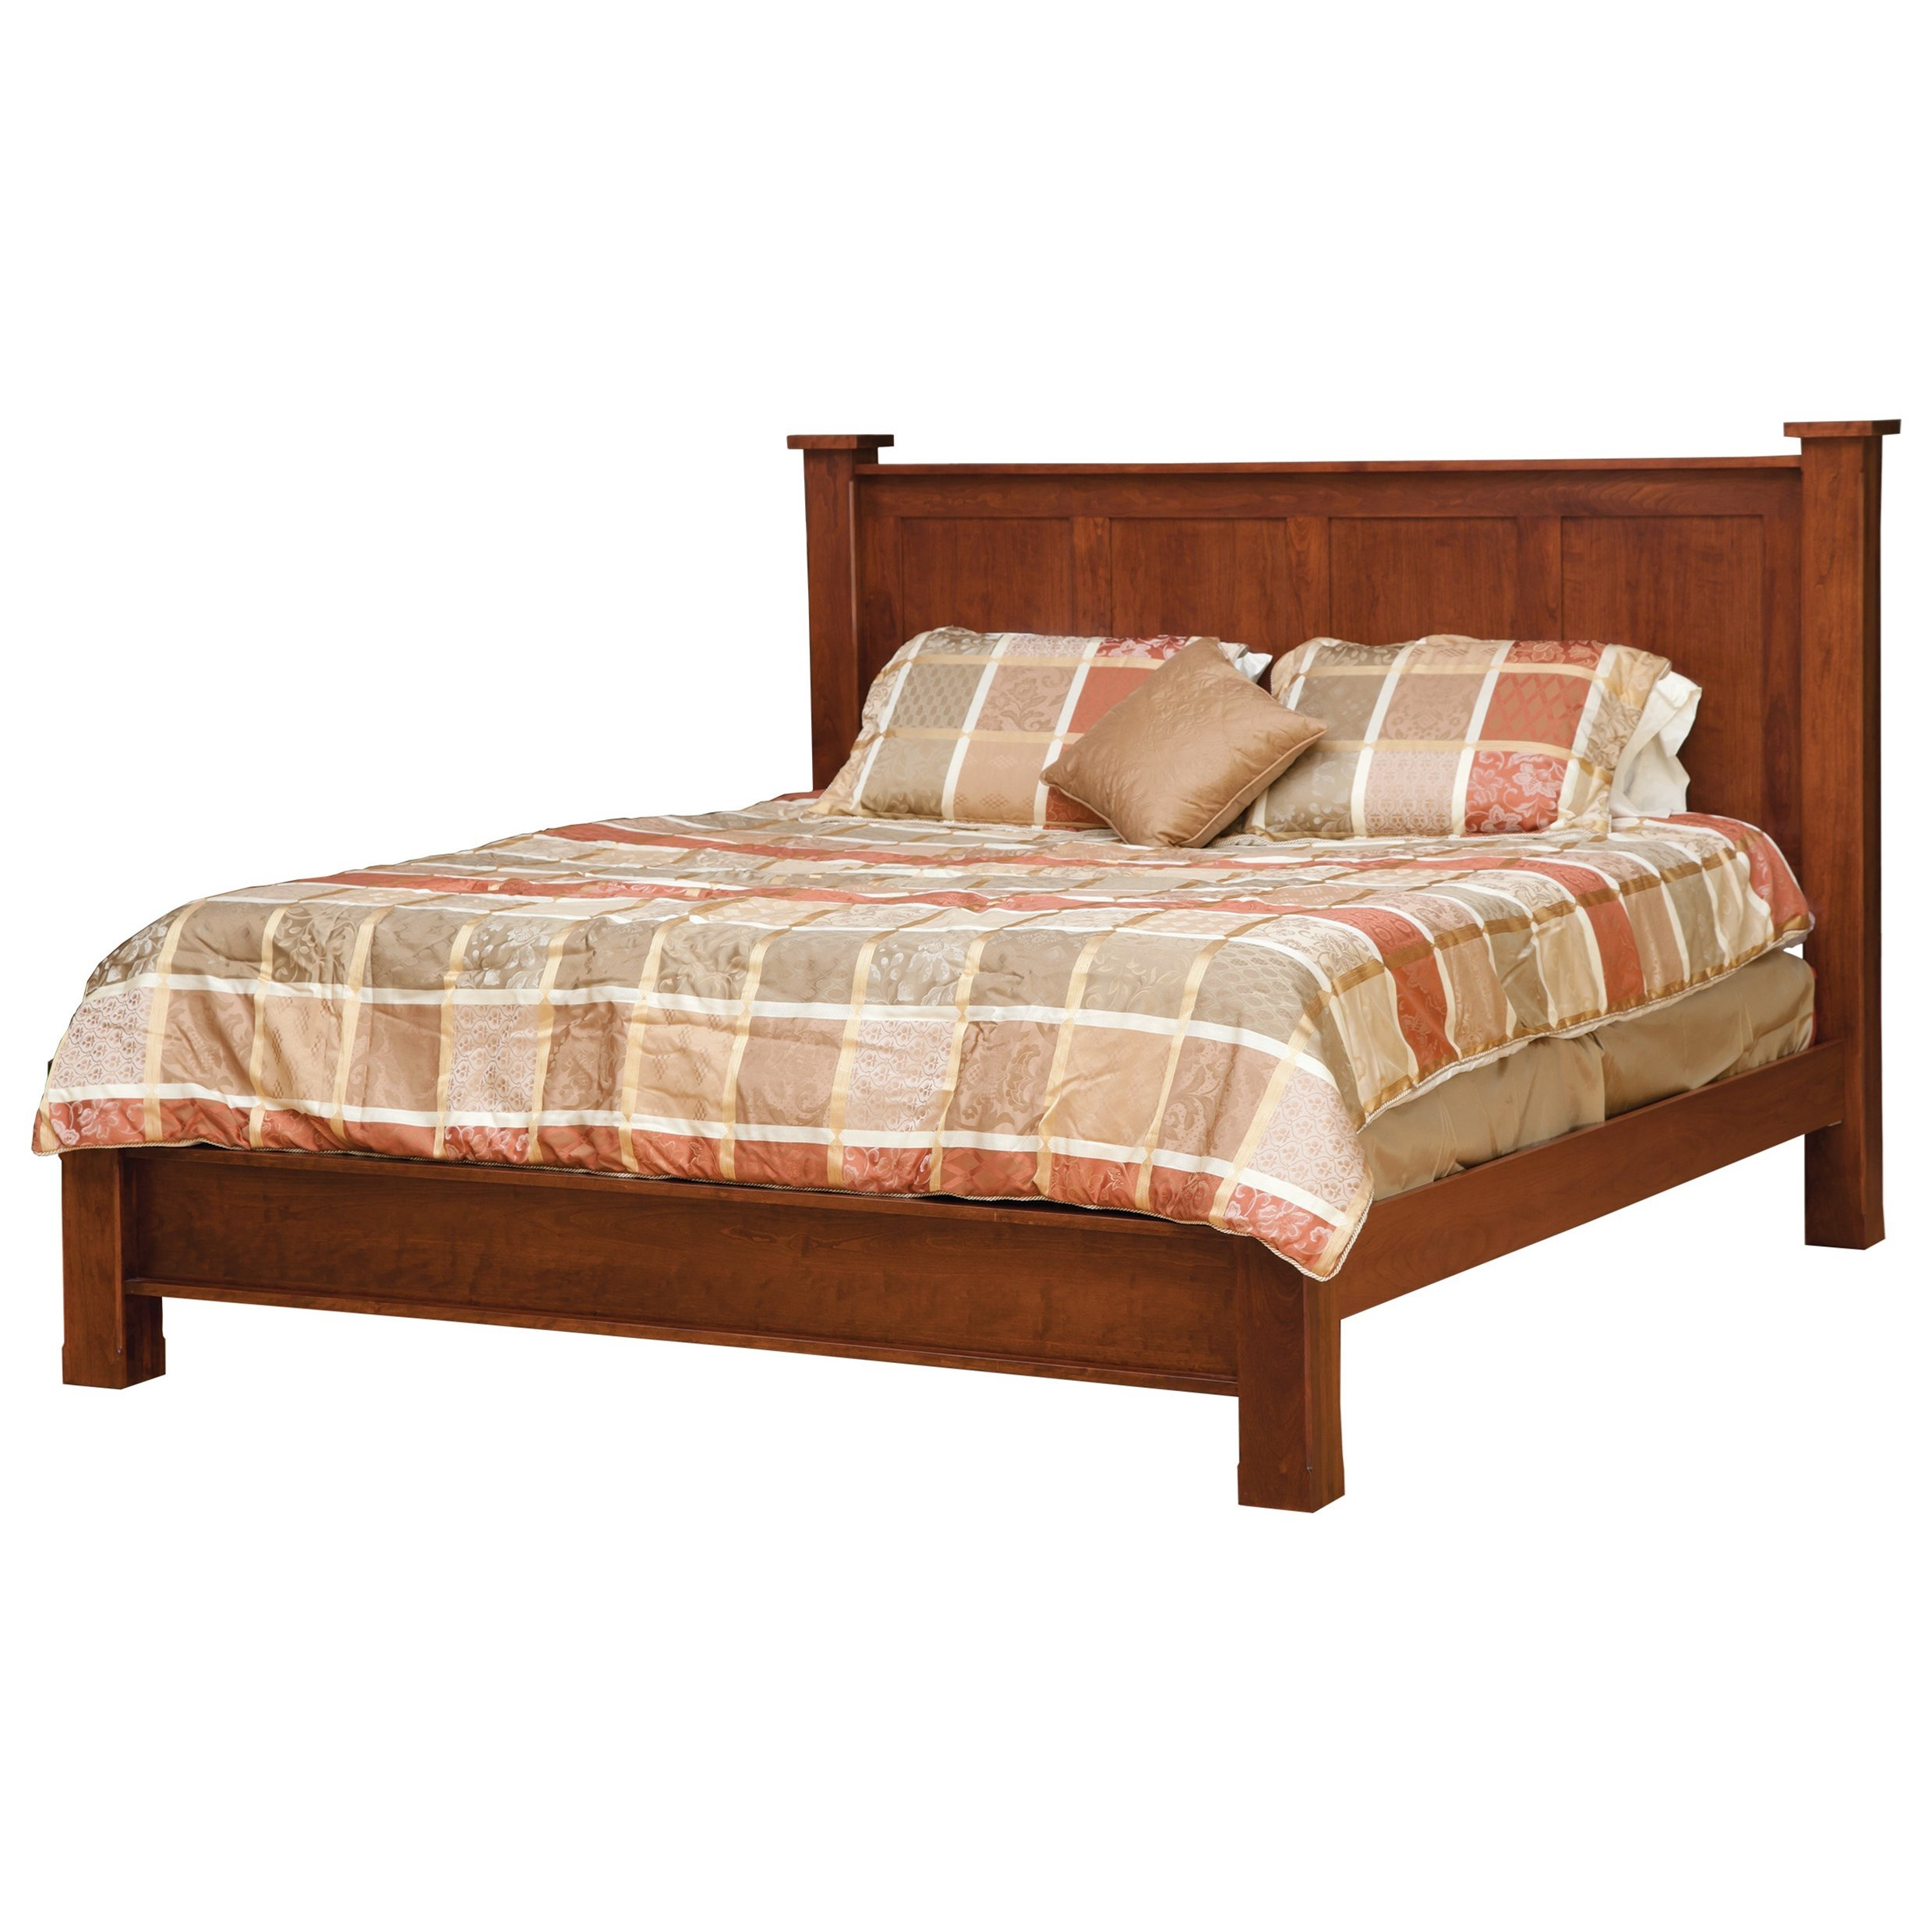 Treasure Queen Bed with Low Footboard by Daniel's Amish at Furniture Superstore - Rochester, MN